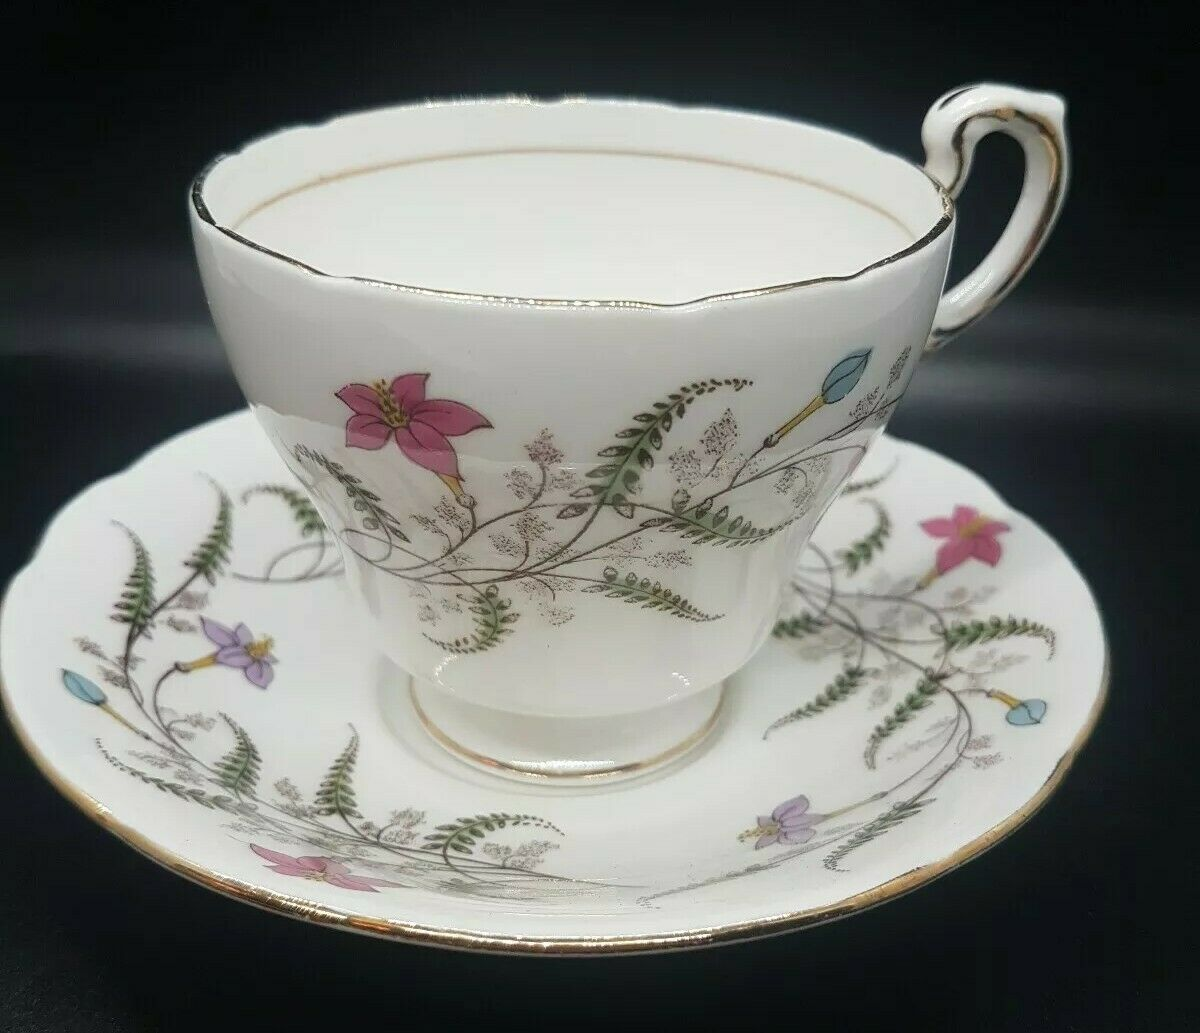 Primary image for Paragon Tea Cup & Saucer by Appt to Her Majesty the Queen Floral Pink Botanical